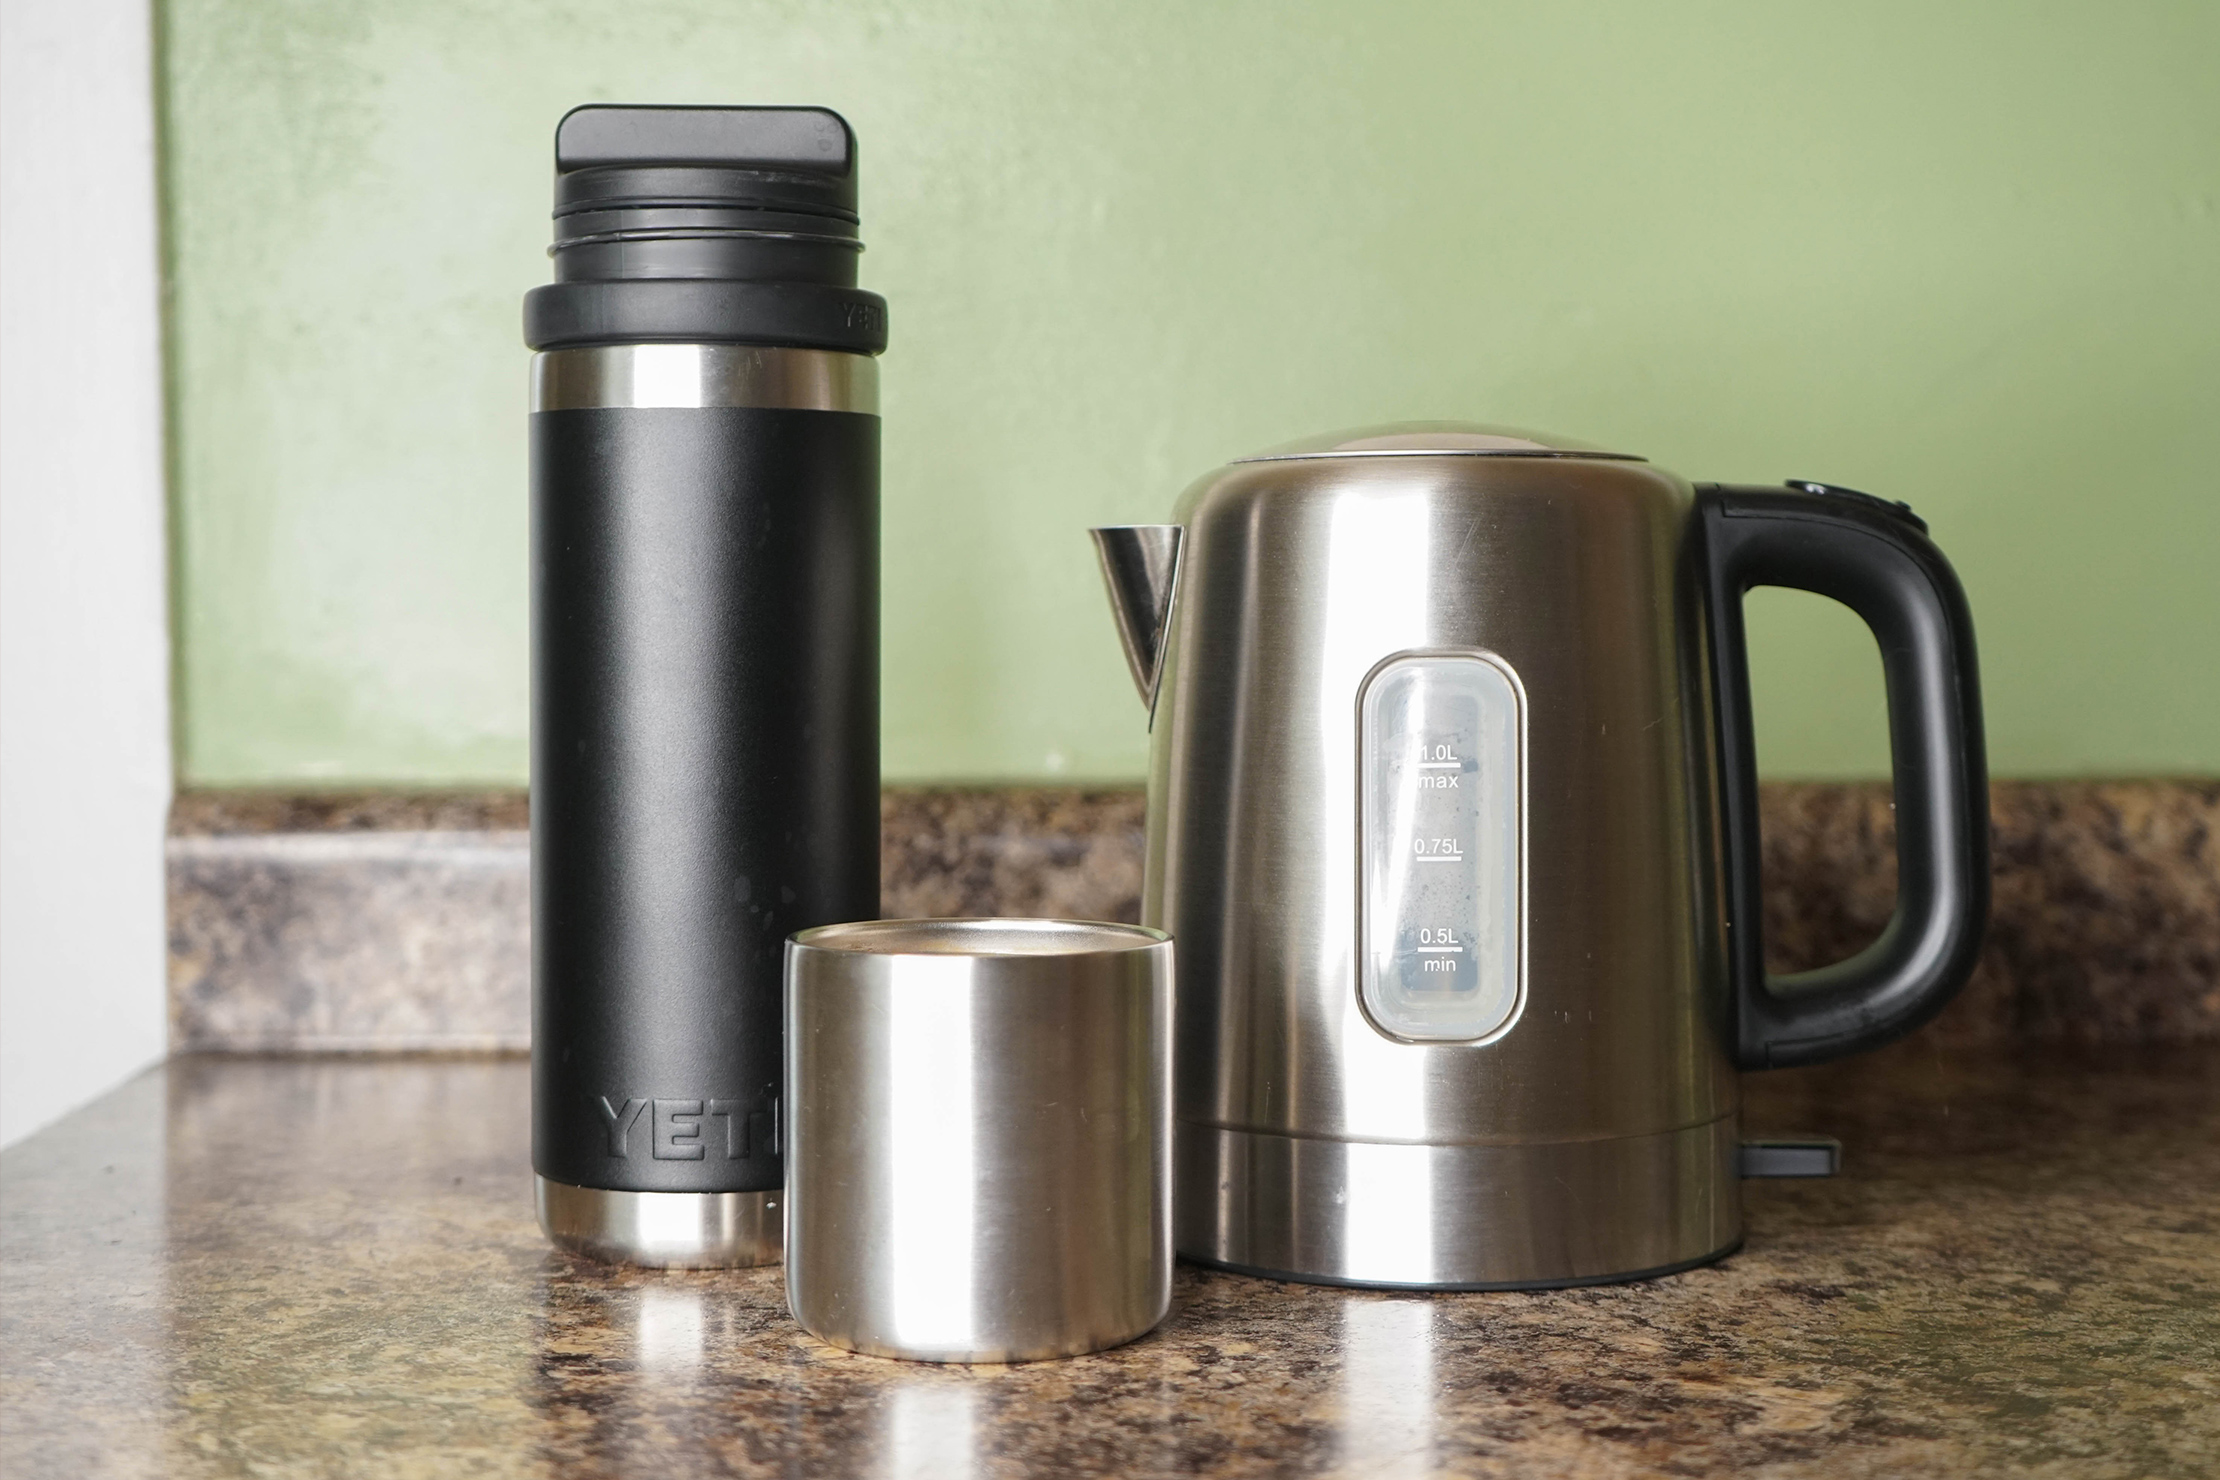 YETI Rambler 18oz Bottle with 5oz Cup Cap Next to Tea Pot